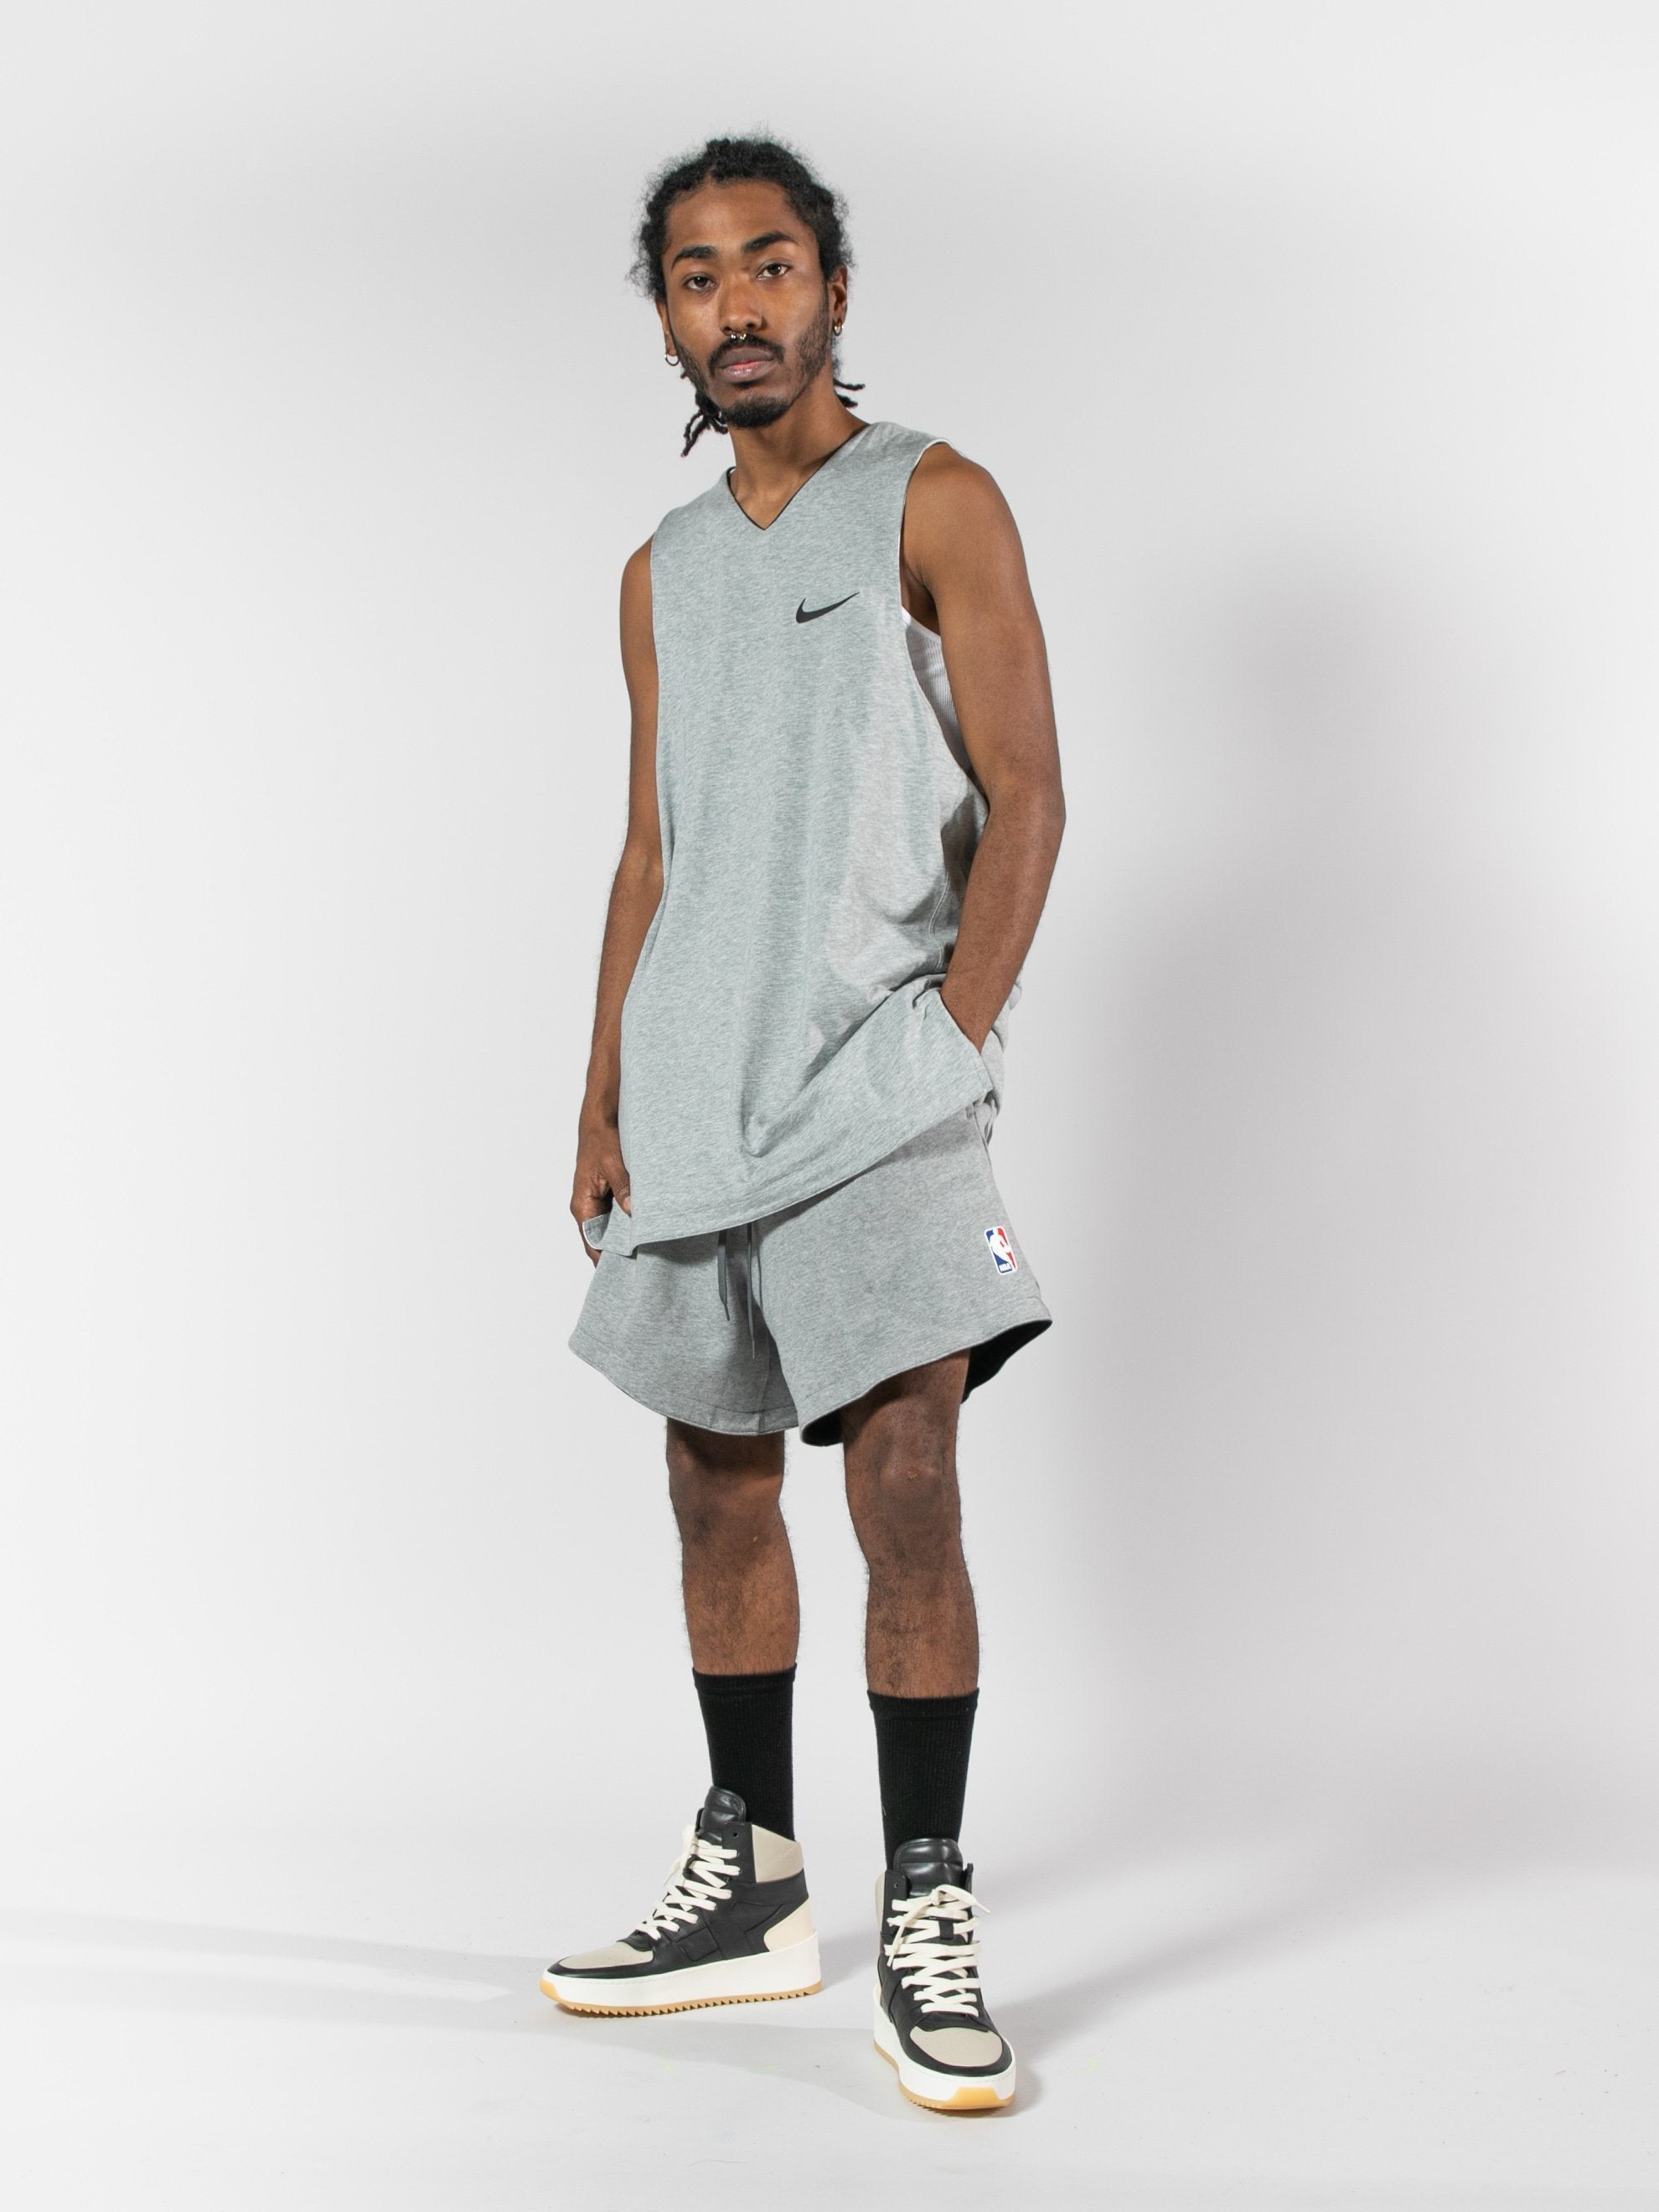 Summit White/Heather Grey/Black Nike x Fear Of God Reversible Short 3